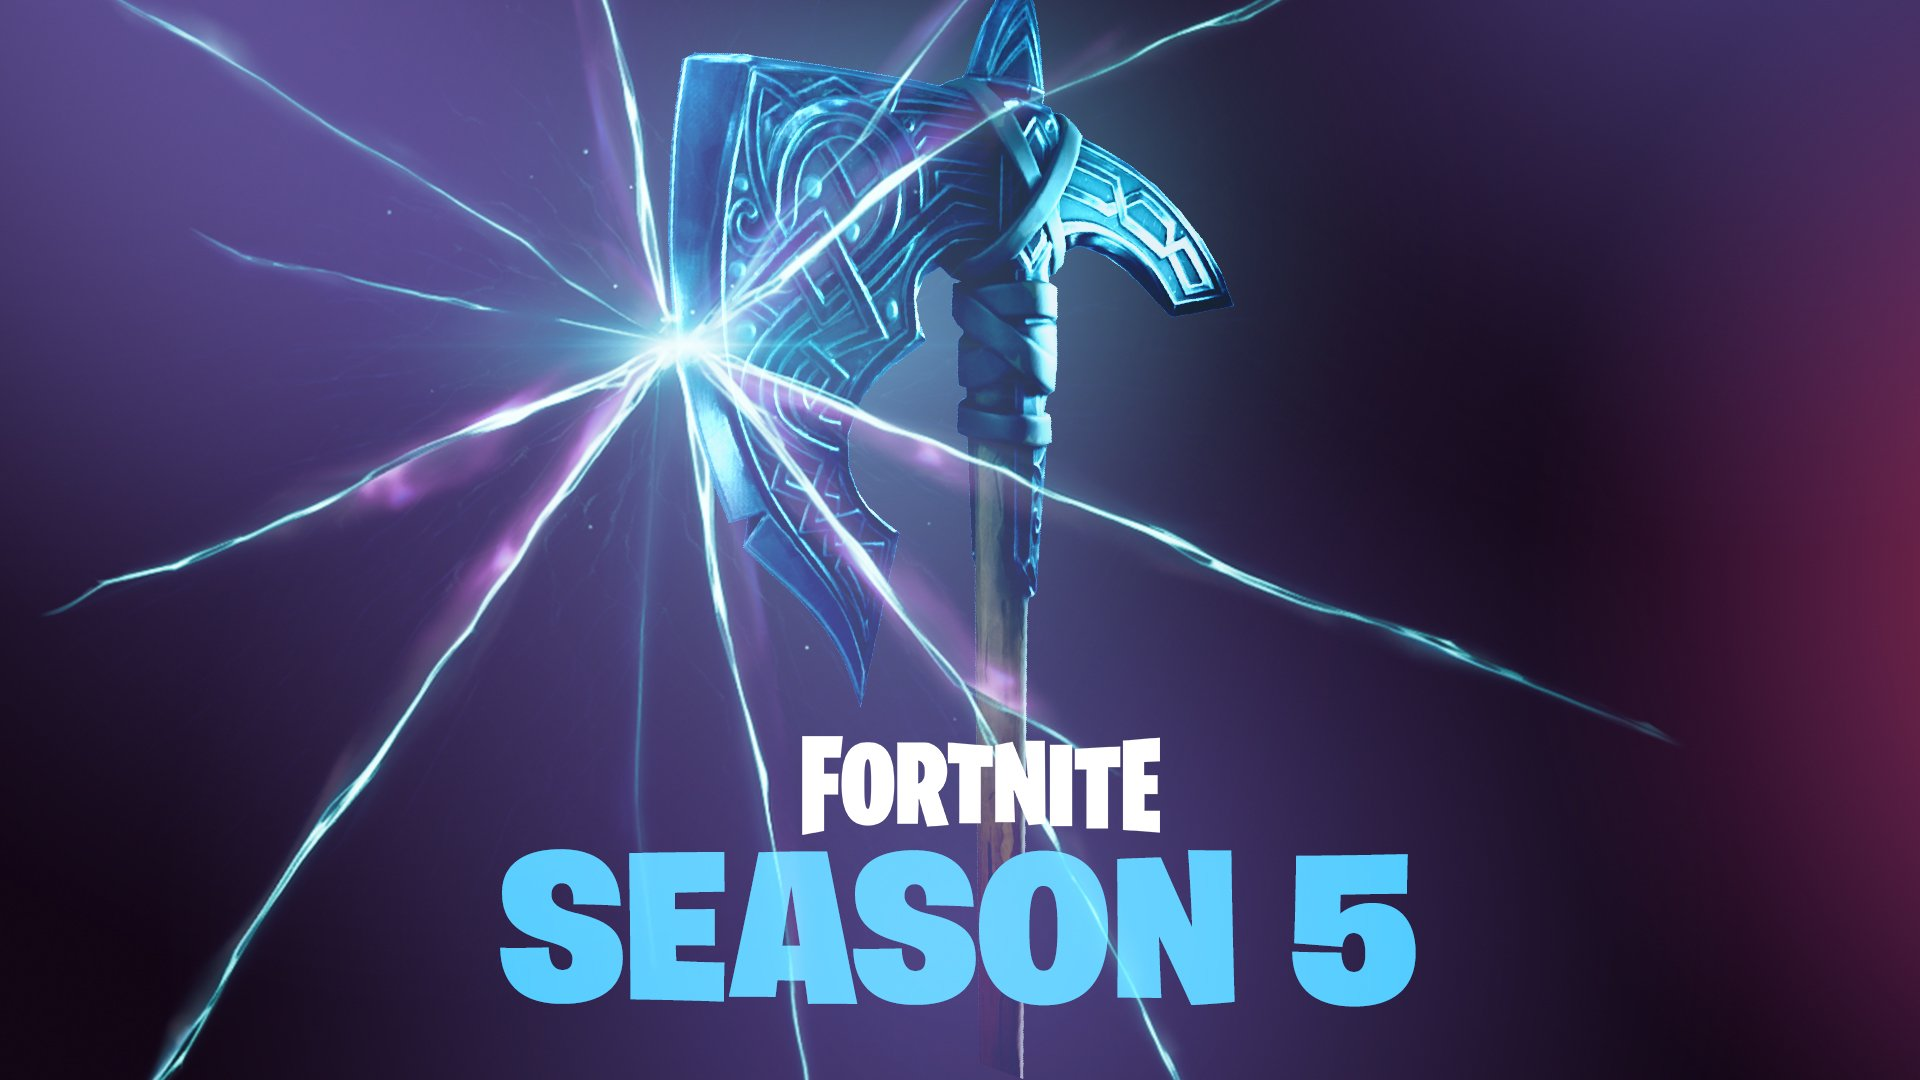 Fortnite Season 5: Start Date, Release Time, Map Changes